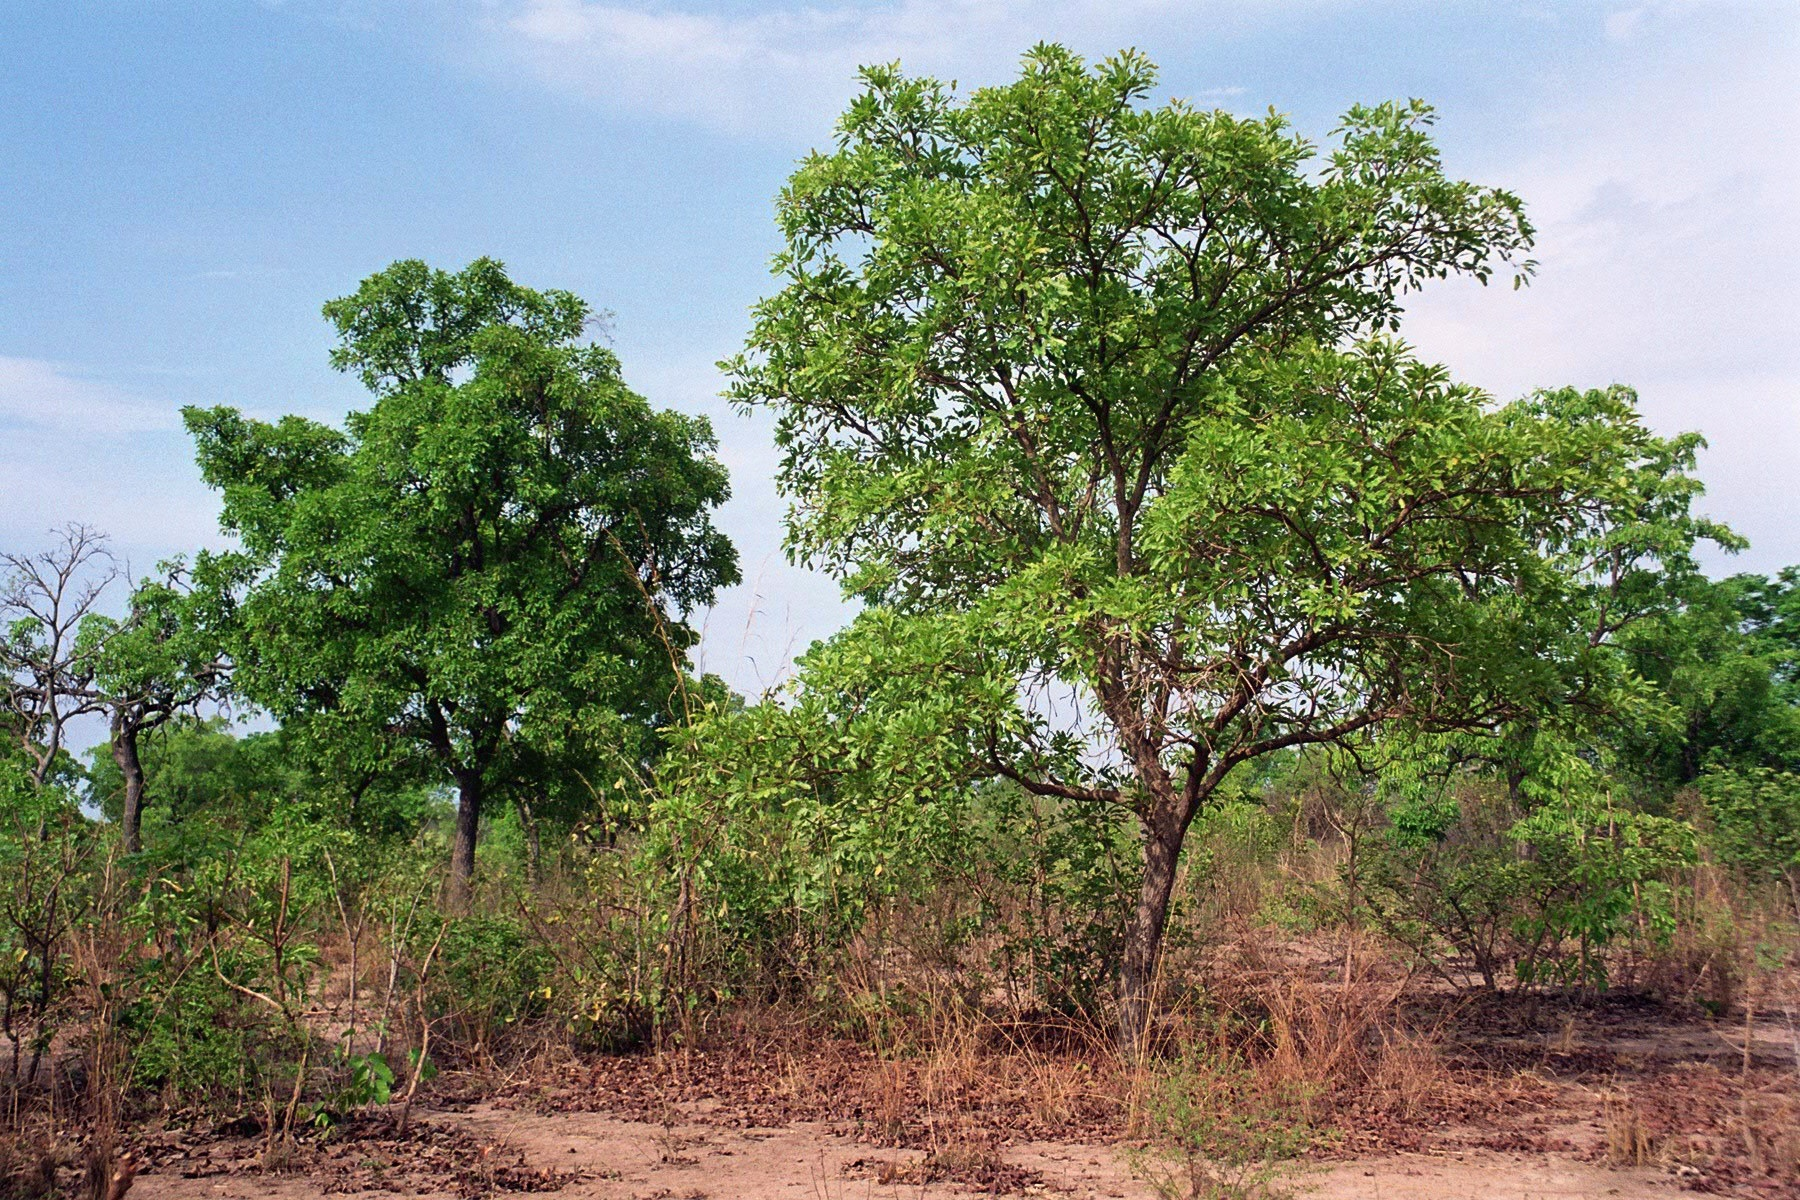 Shea butter is obtained from the nuts of the karite tree  (Butyrospermum parkii),  which is a native of Africa.